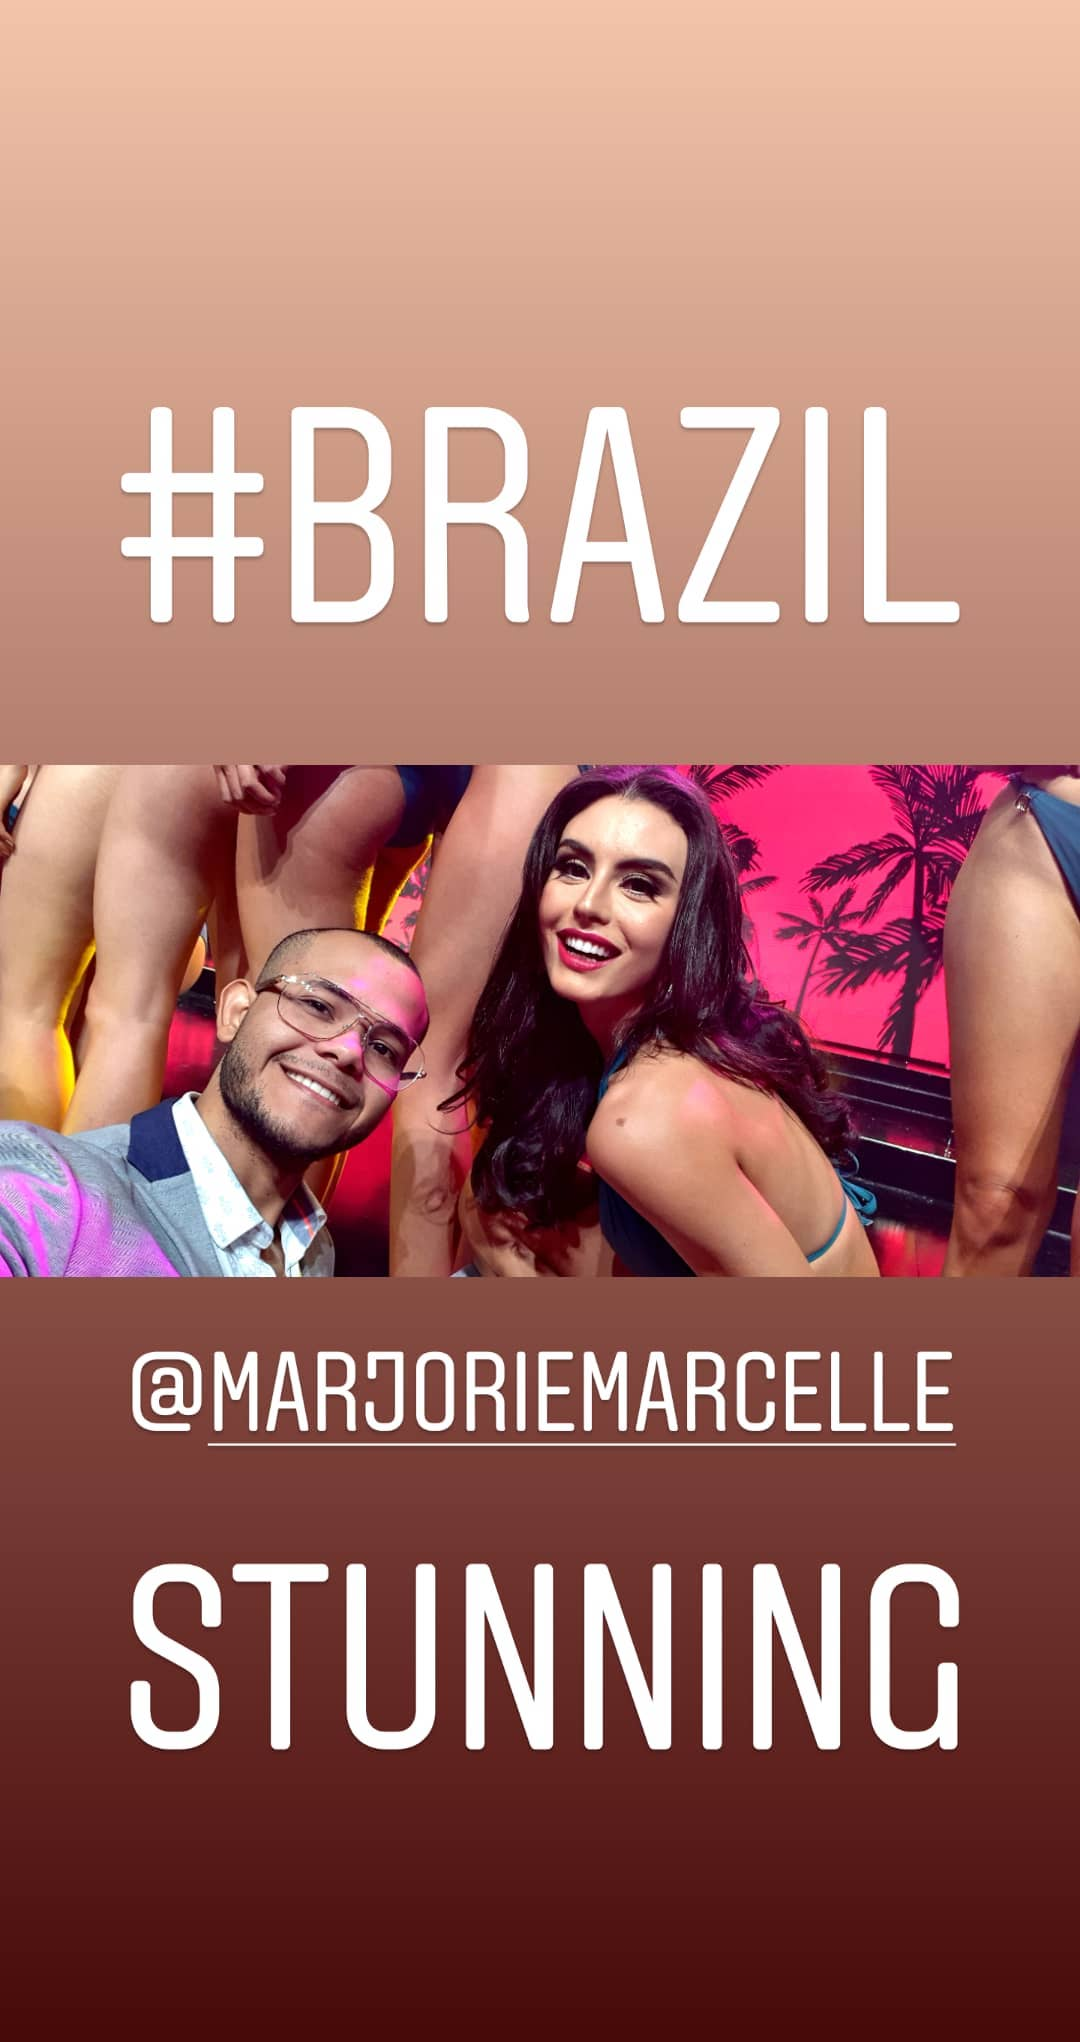 marjorie marcelle, top 5 de miss grand international 2019. - Página 33 Alex-439